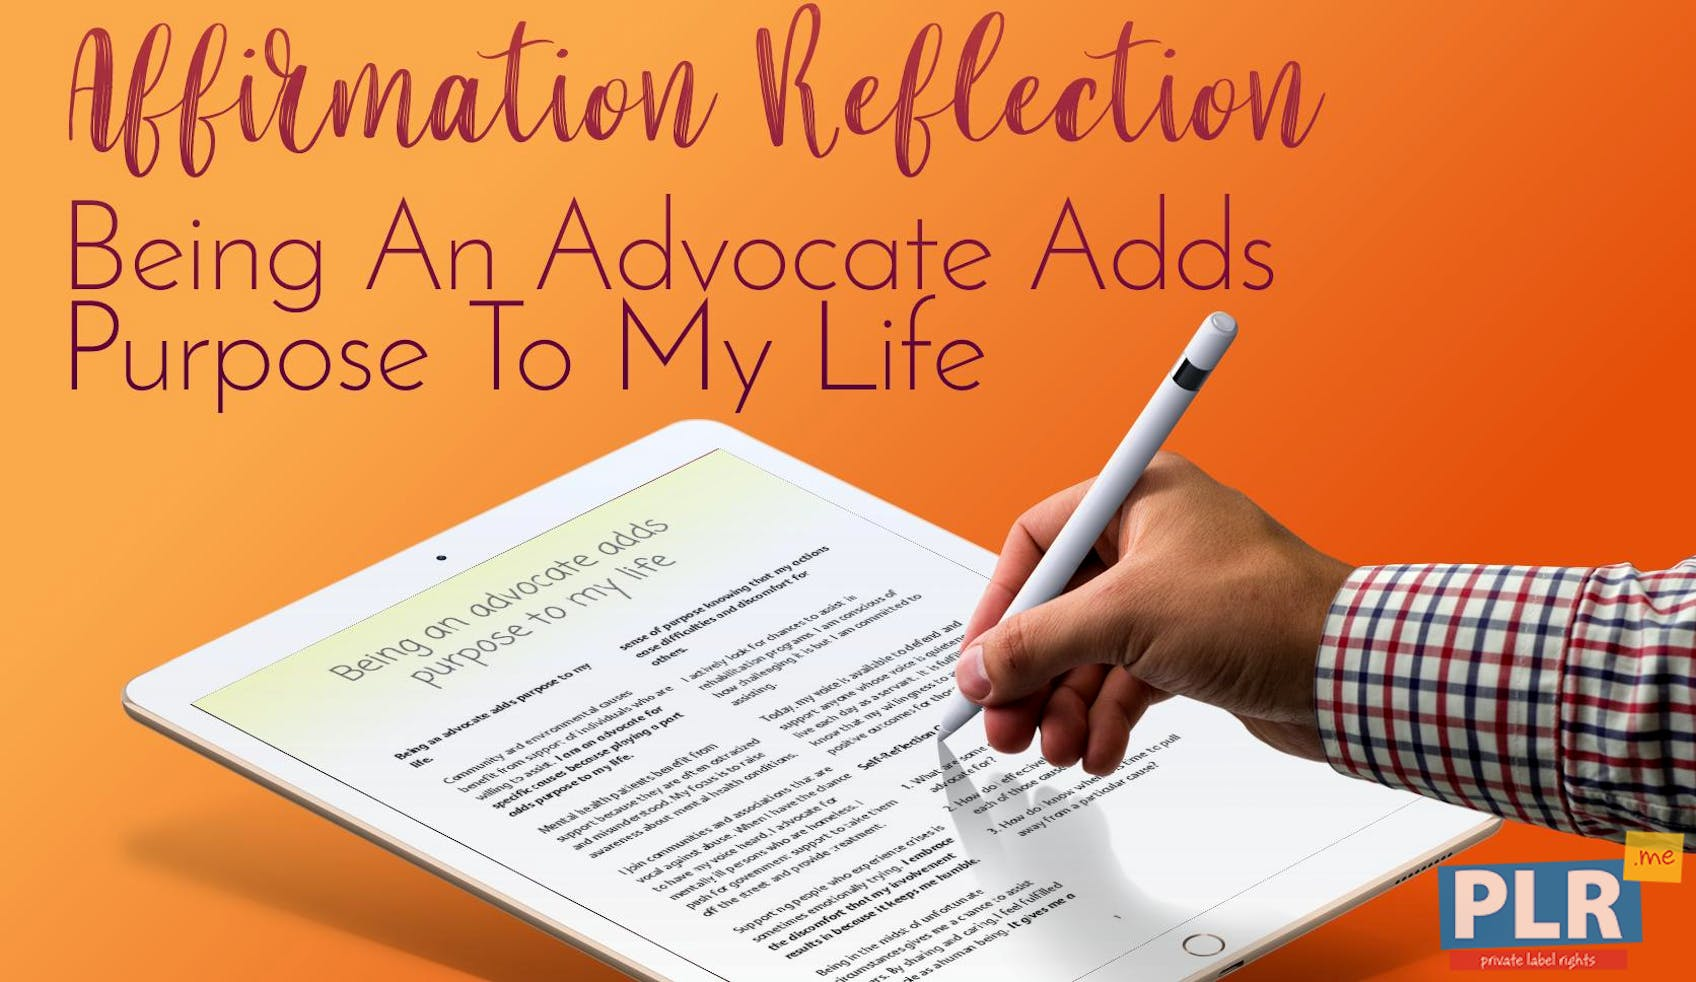 Being An Advocate Adds Purpose To My Life